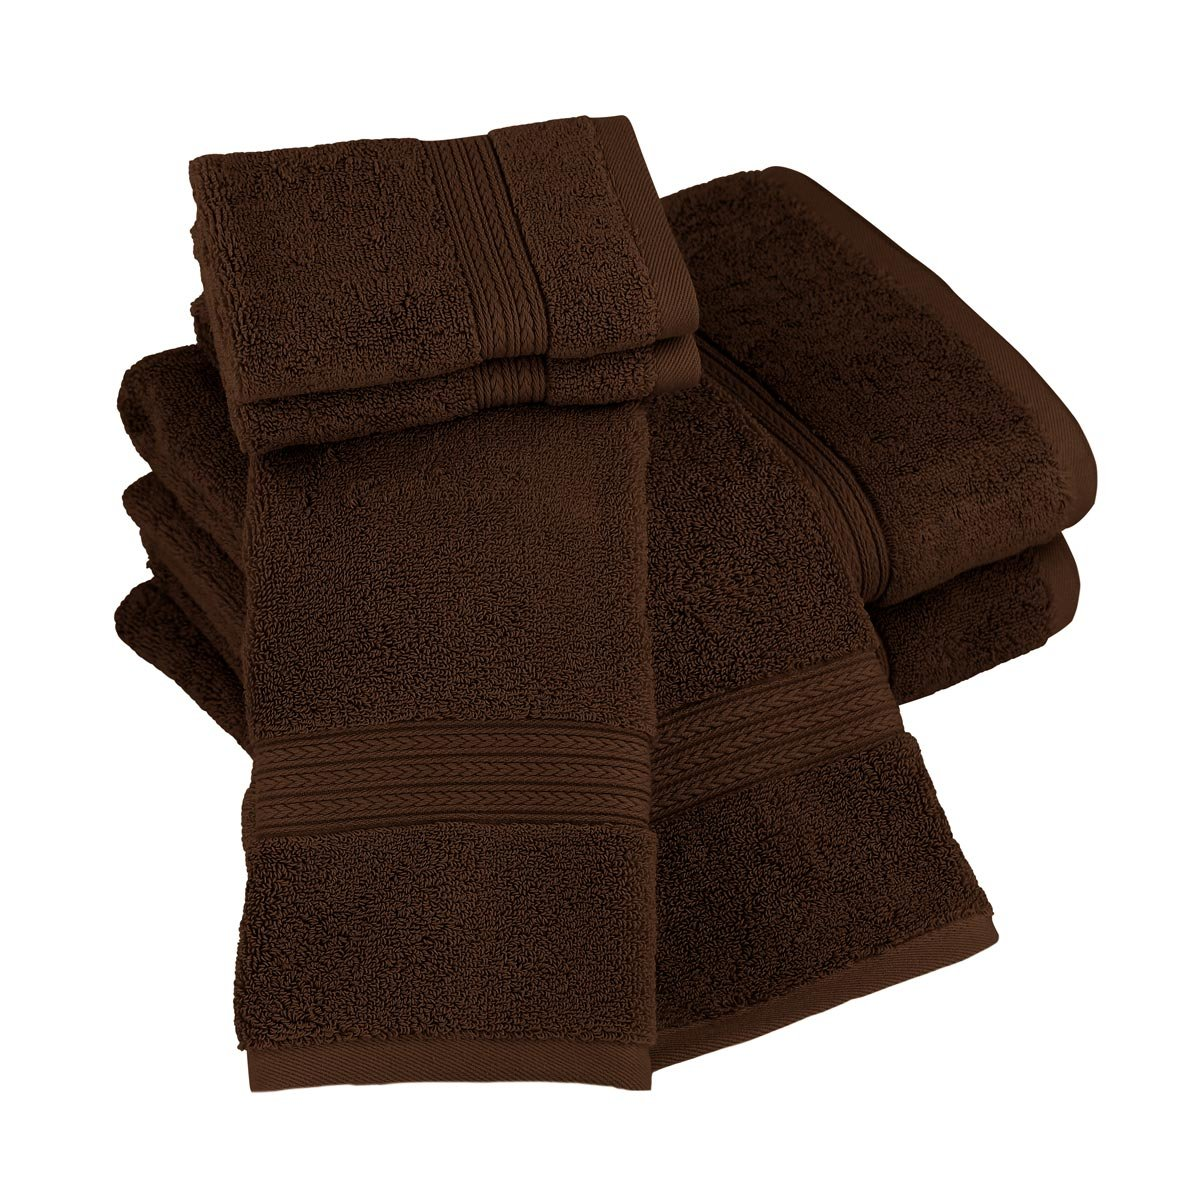 Luxor Linens New Arrival Bliss Collection Egyptian Cotton Classic 6-Piece Towel Set - Chocolate - with Gift Packaging by Luxor Linens (Image #3)